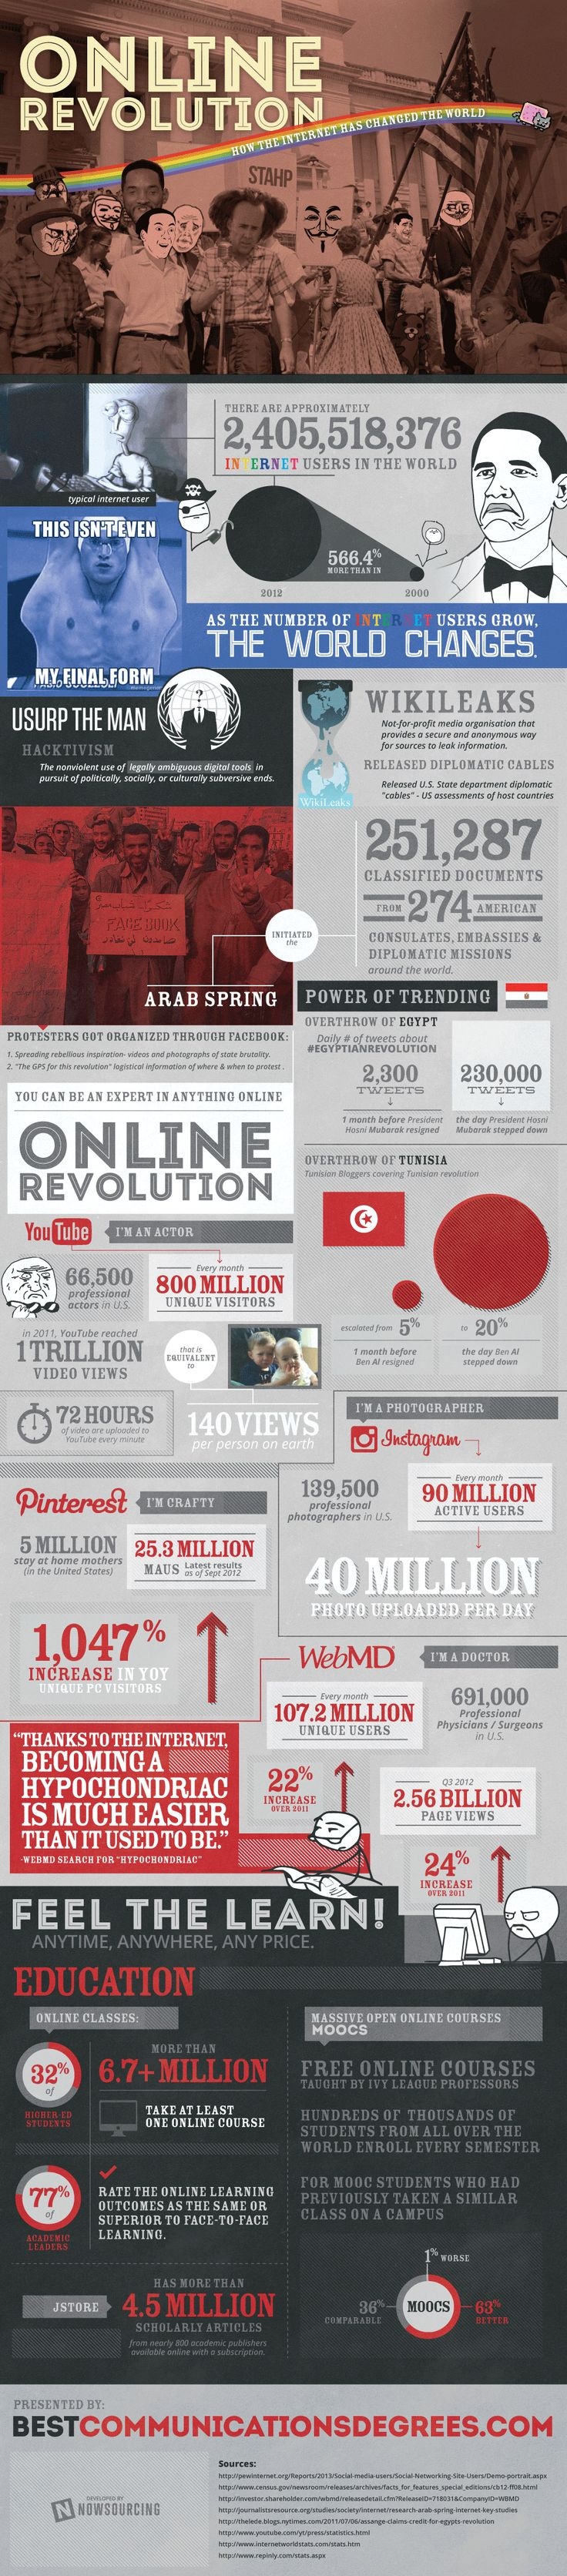 How the Internet Revolutionized the World